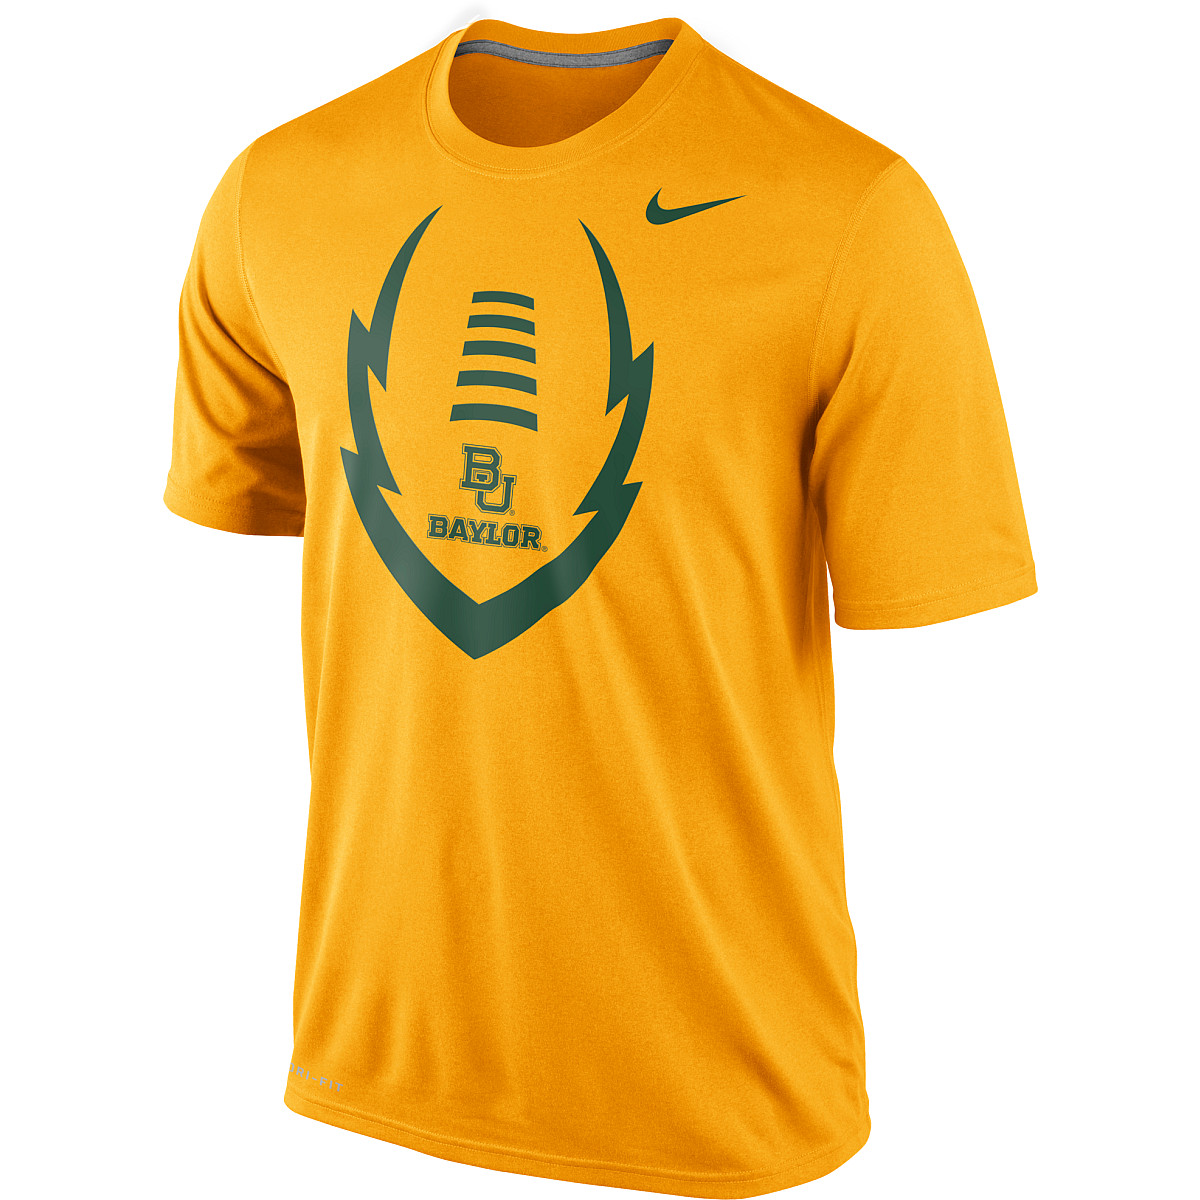 03aaee832d9a Mens Baylor Bears Dri FIT Legend Football Icon Short Sleeve T Shirt ...